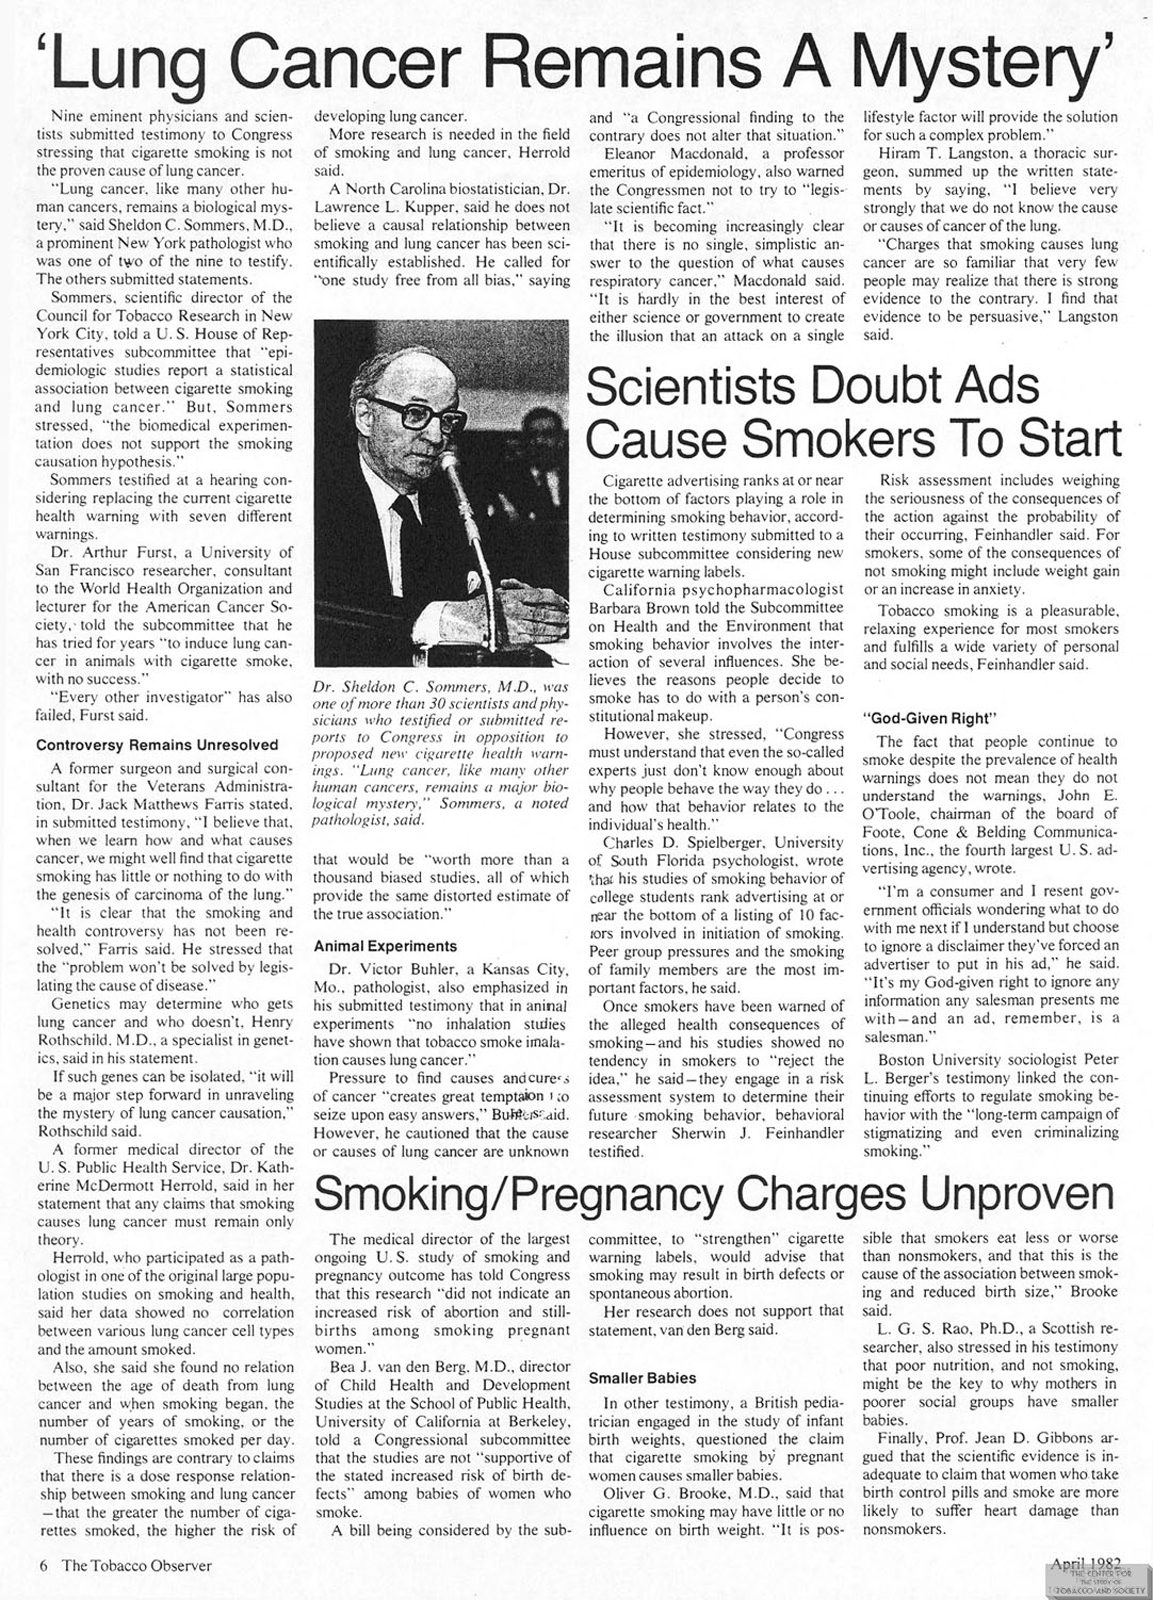 1982 04 Tobacco Observer Lung Cancer Remains a Mystery